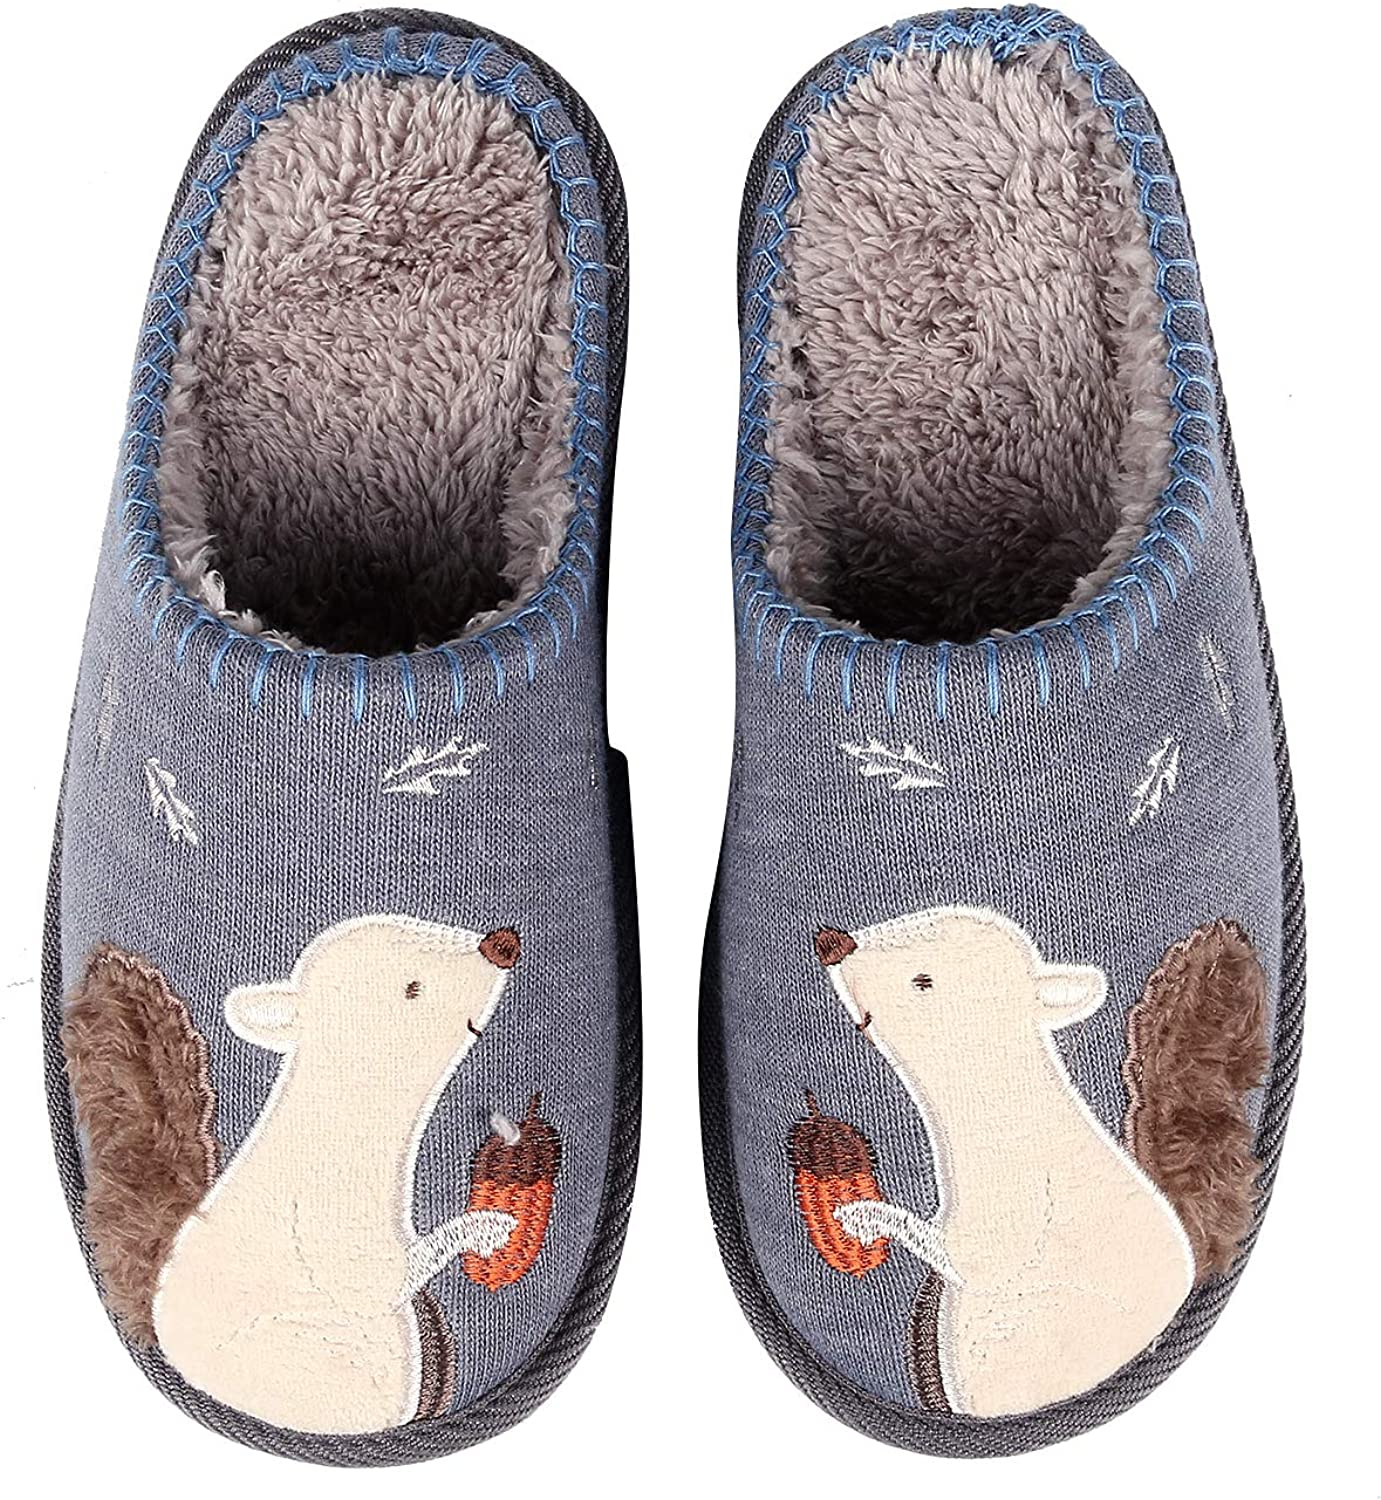 Shevalues Animal Memory Foam House Slippers Cute Squirrel Indoor Slippers w Soft Waterproof Sole Fuzzy Clog Slippers